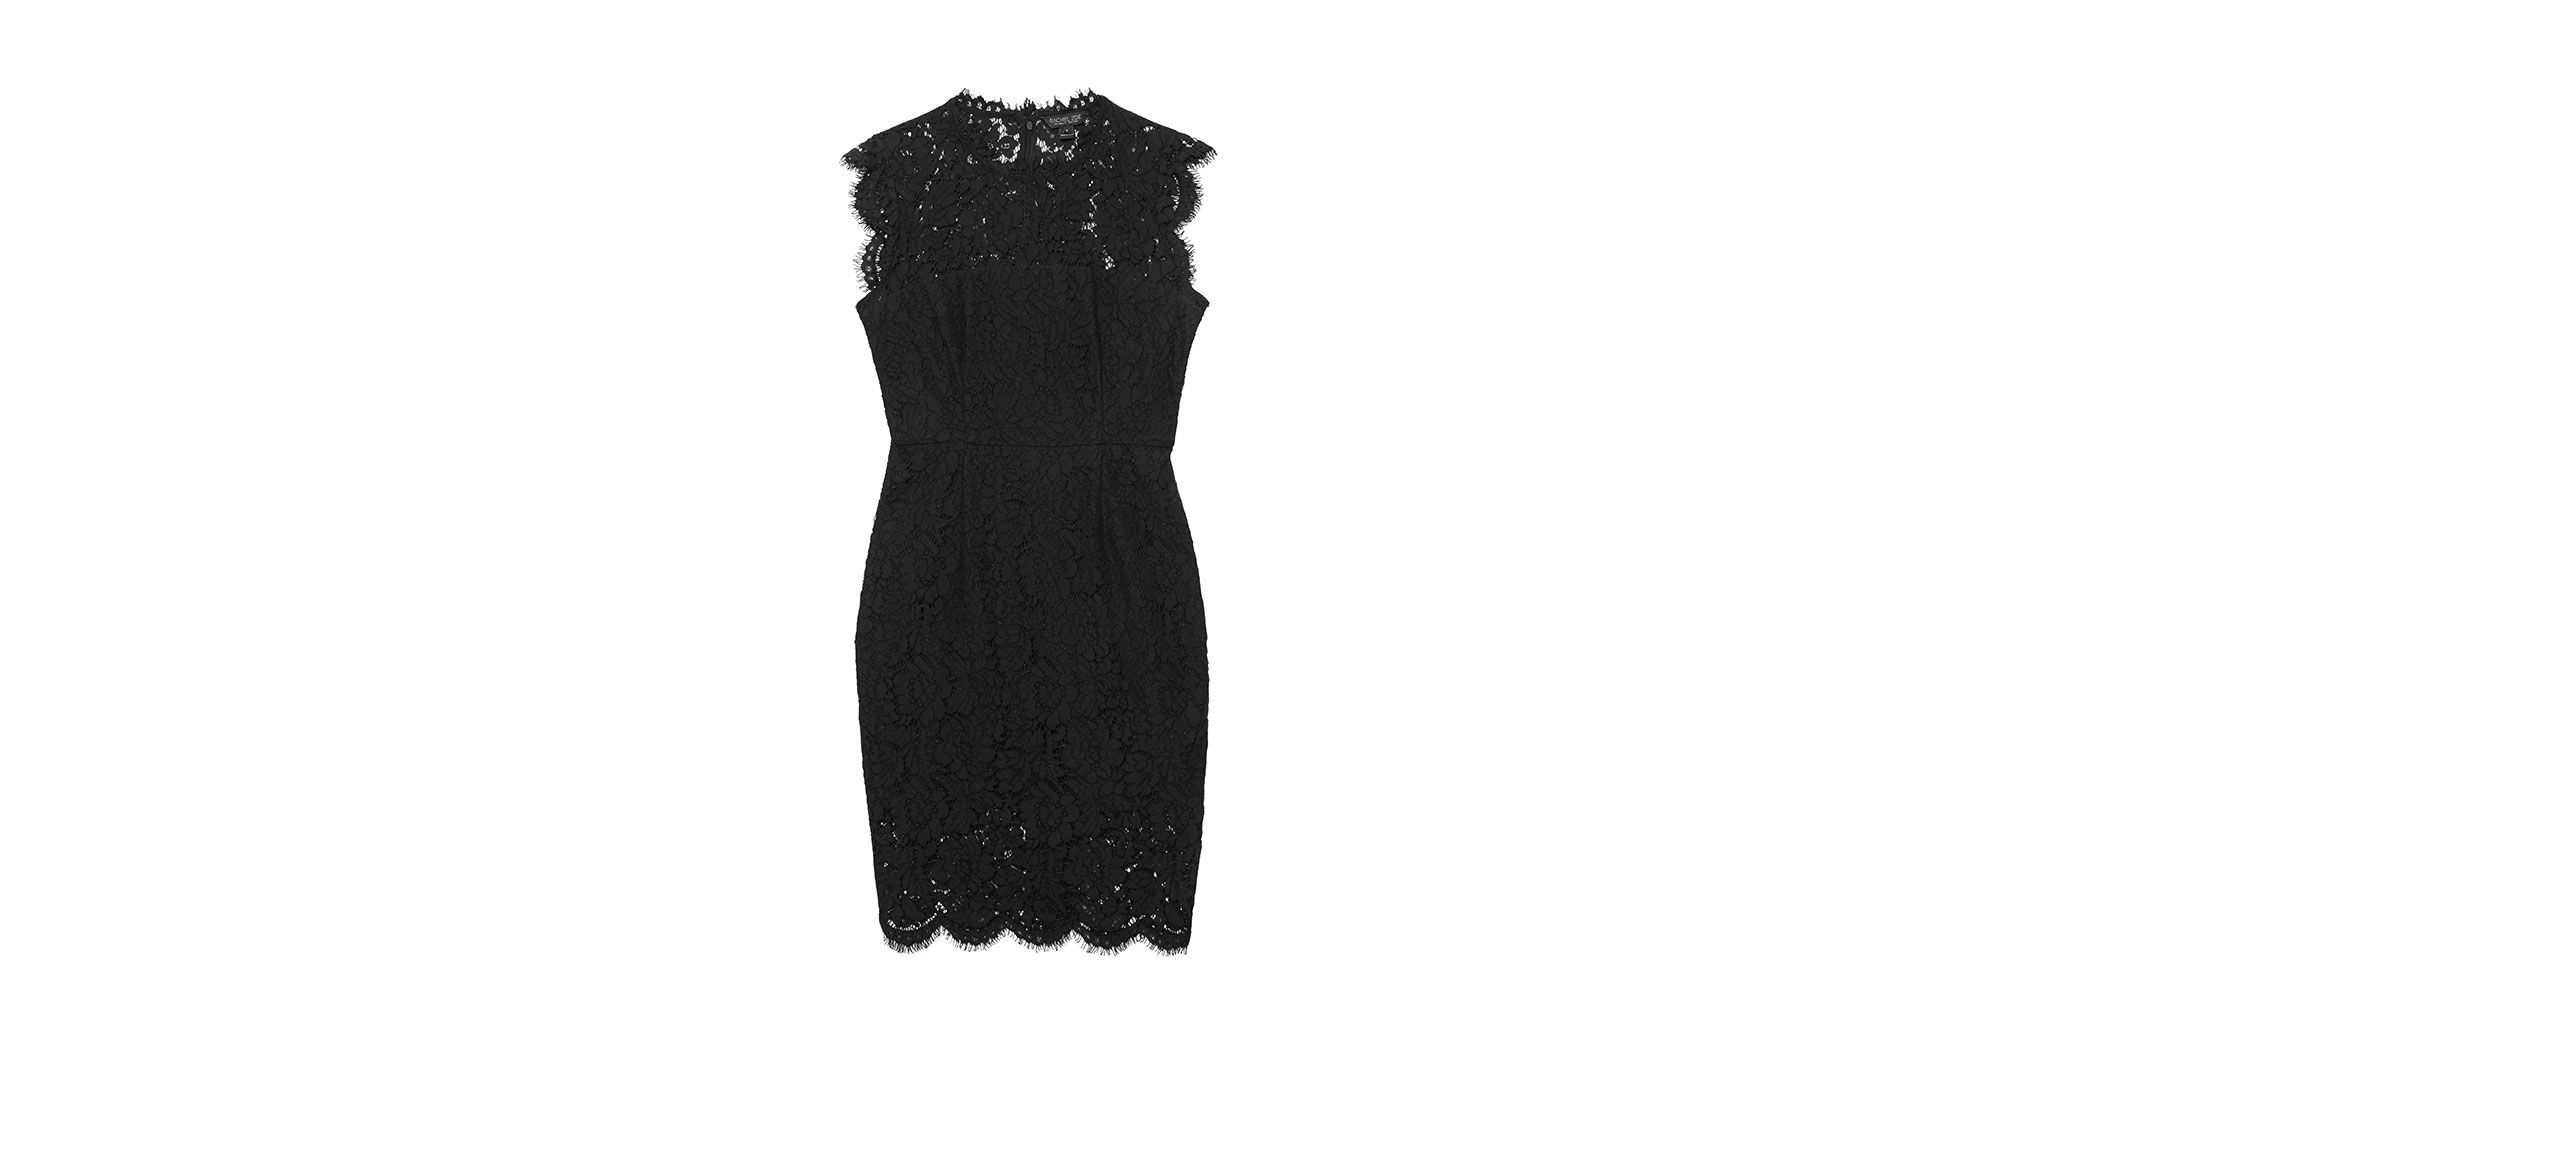 Falling just above the knee and finished with cap sleeves and all-over lace, the Suzette dress is a hero piece for your closet.